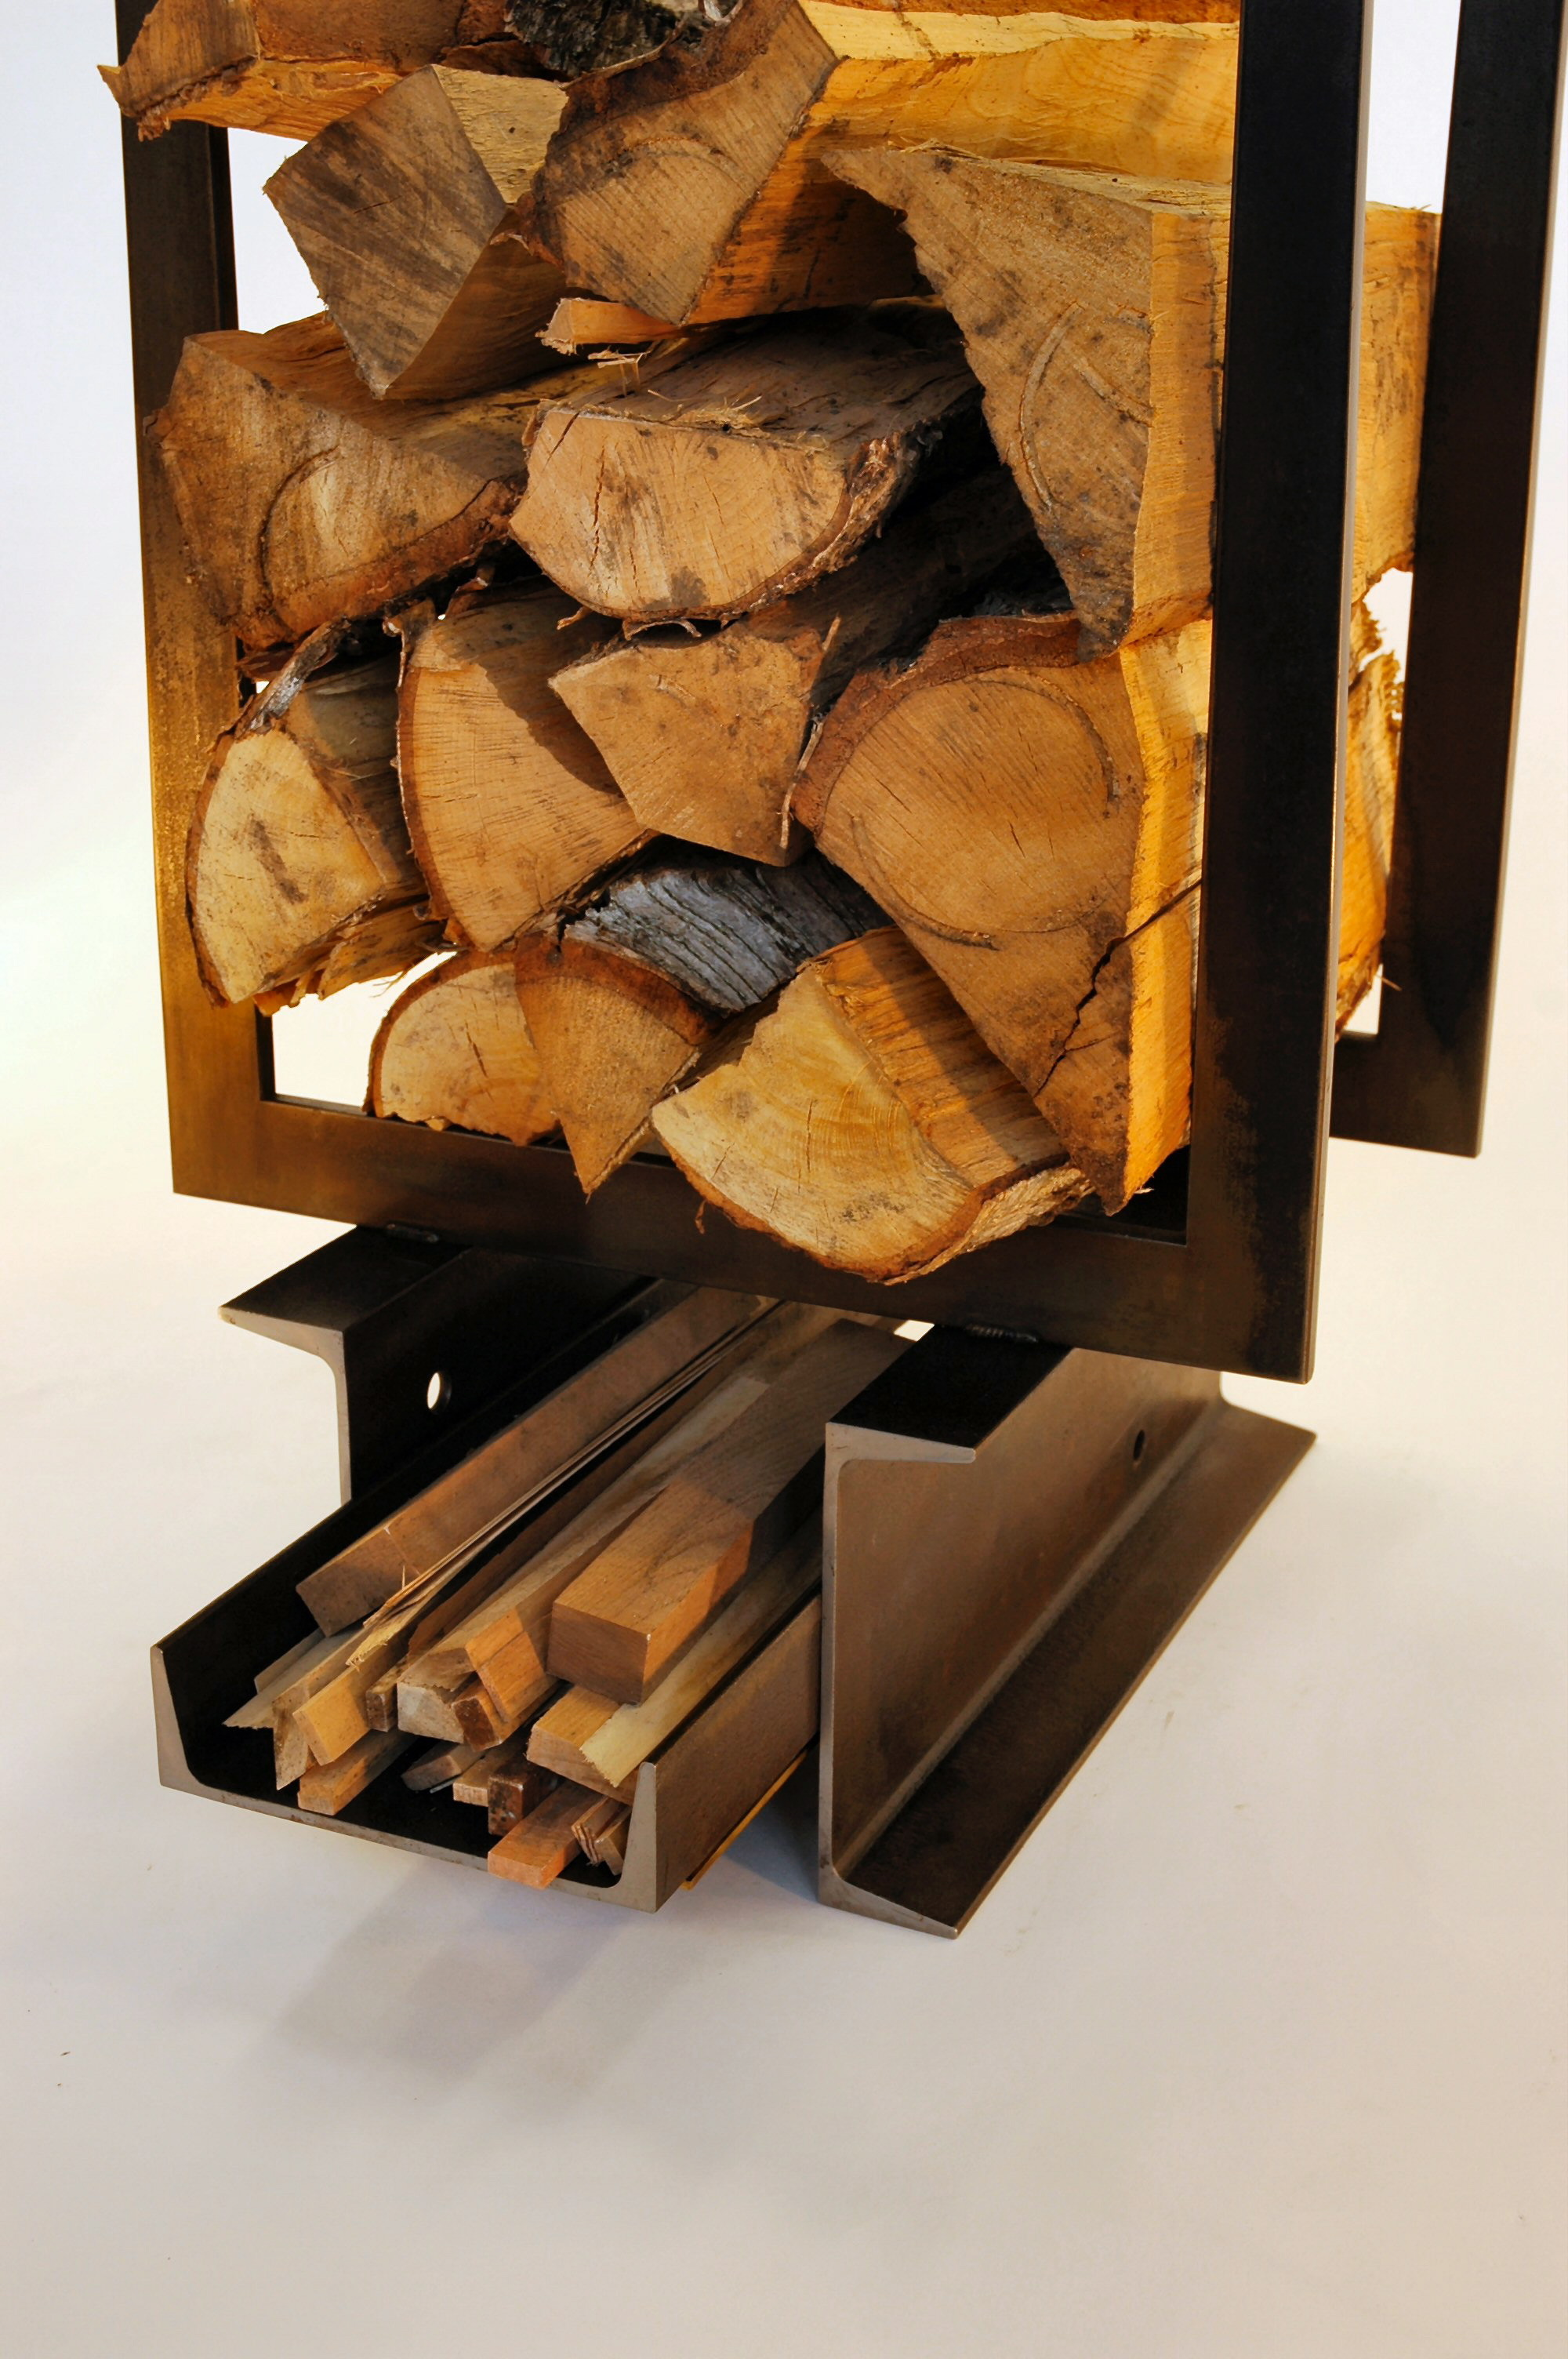 The bottom channel was not structural, it pulled out for easy access to kindling.